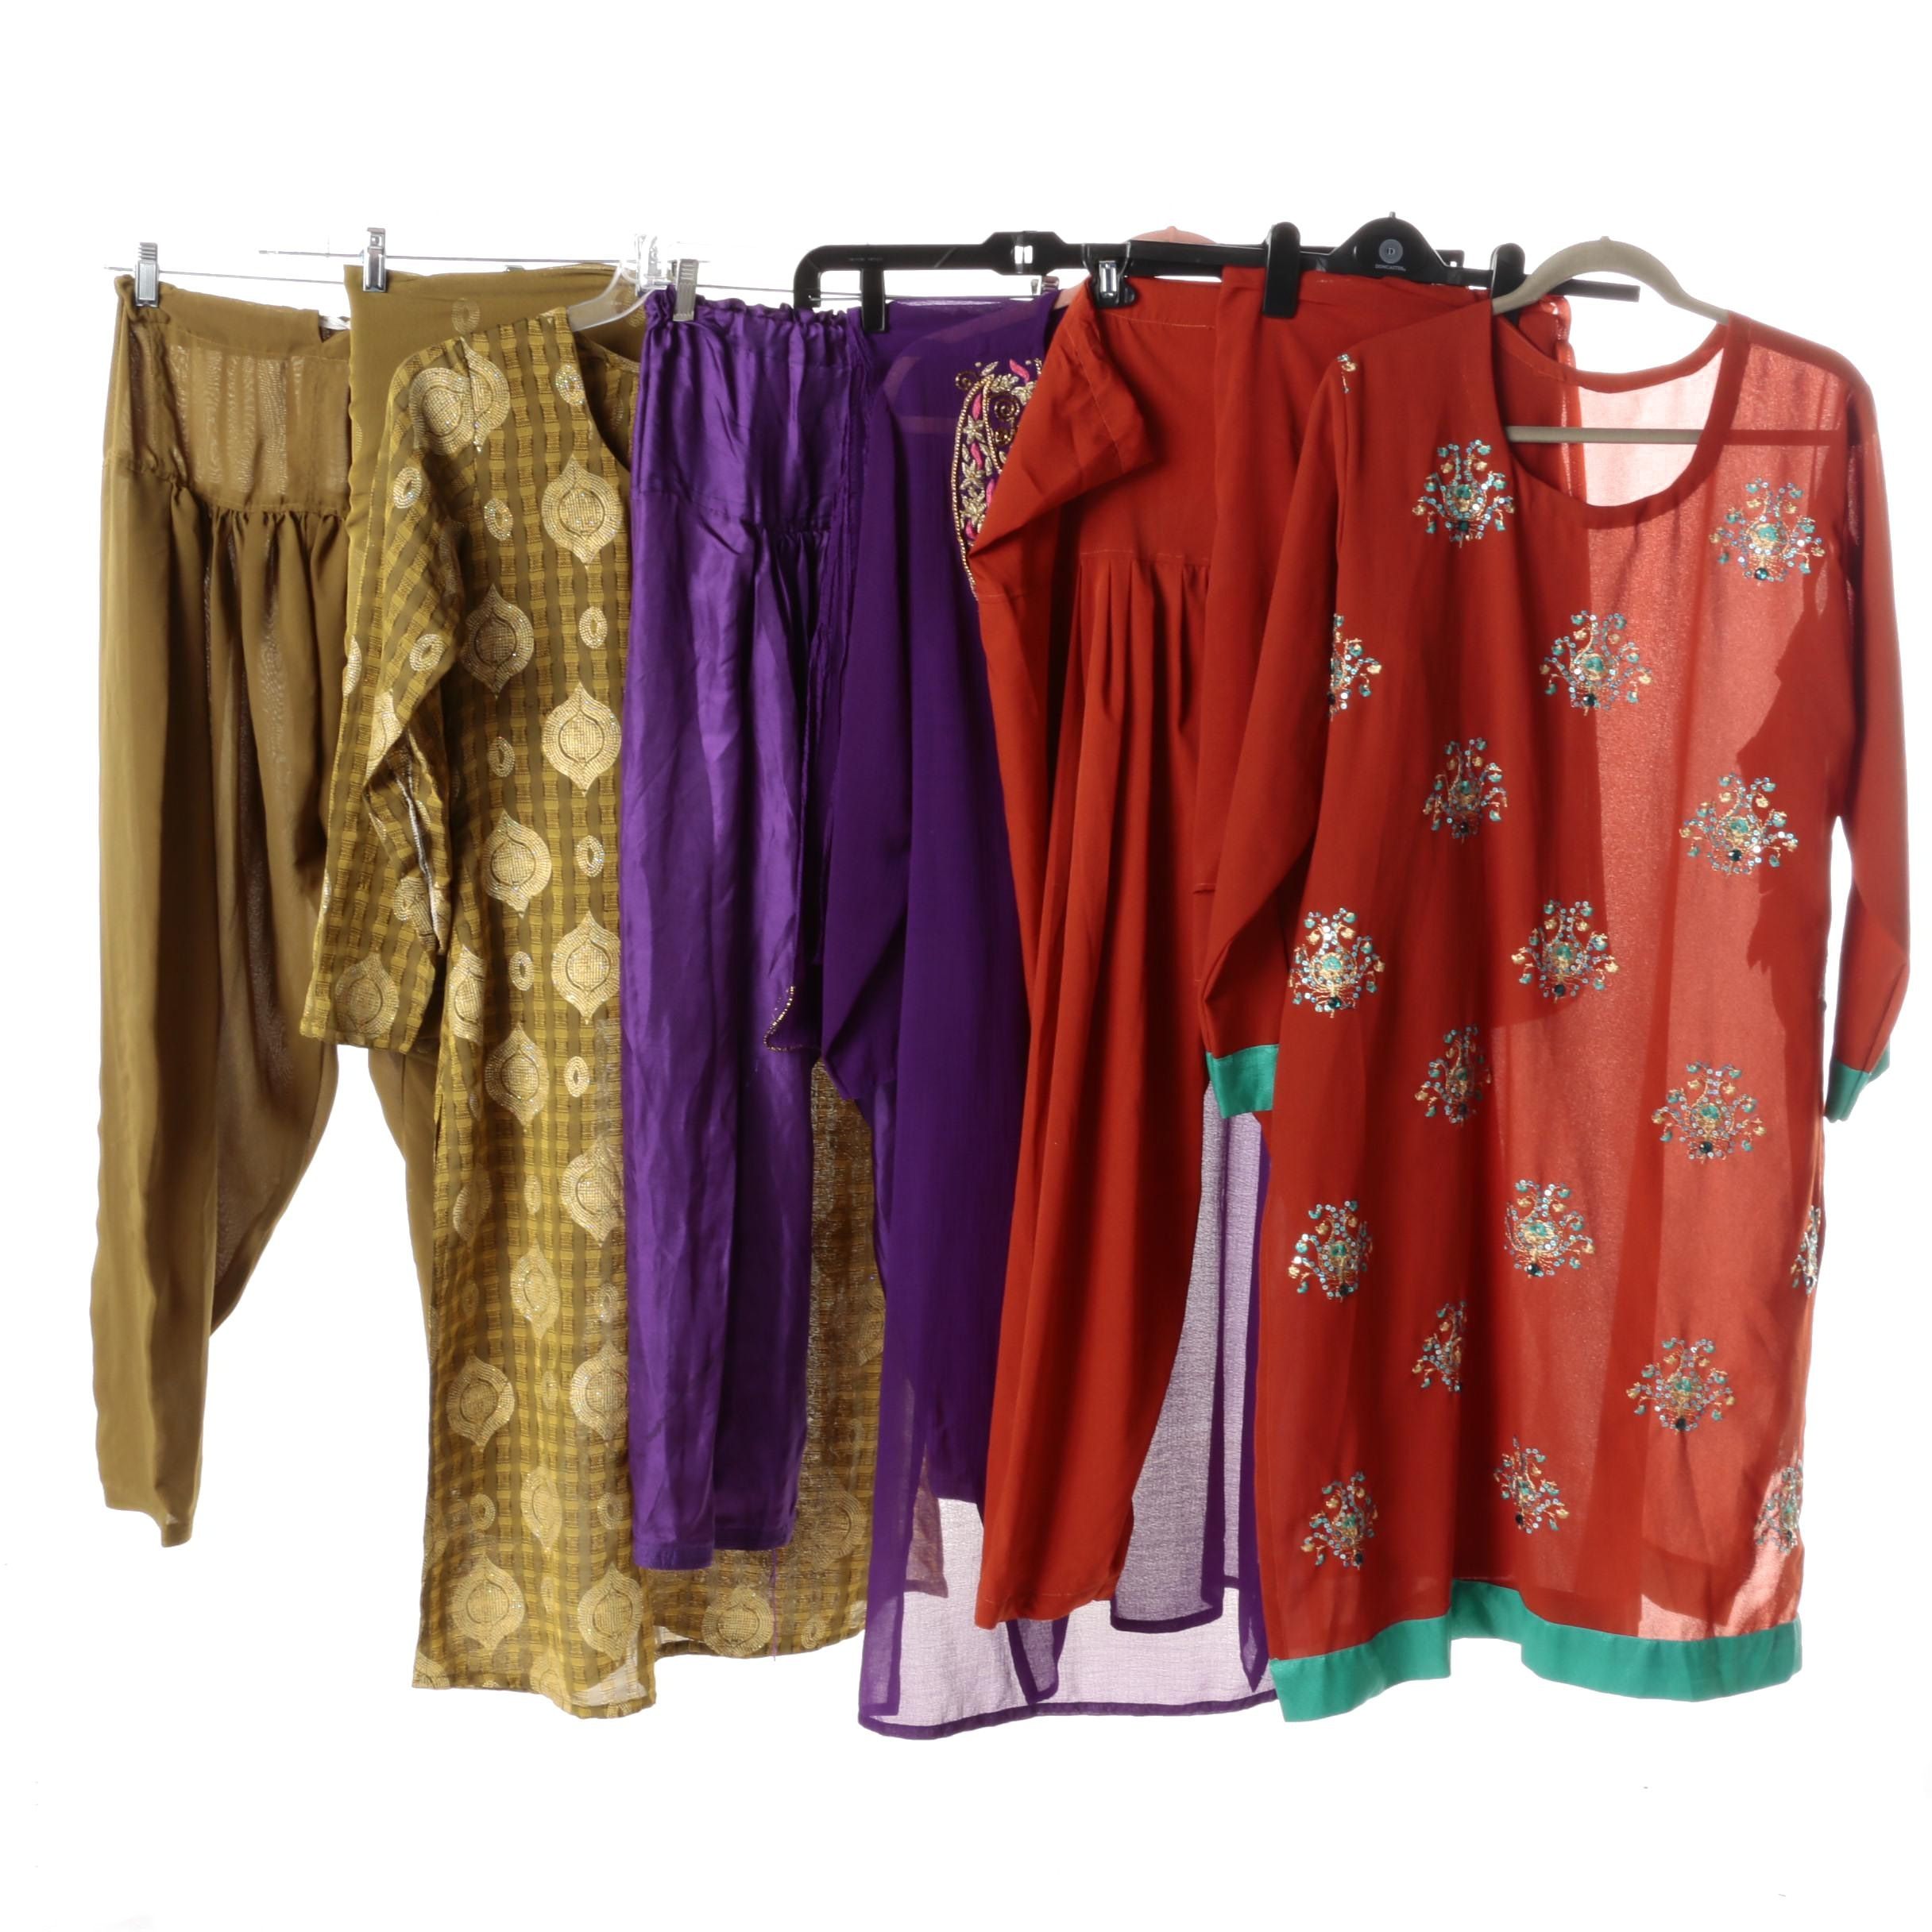 Women's Sheer Tunics with Matching Harem Pants and Scarves